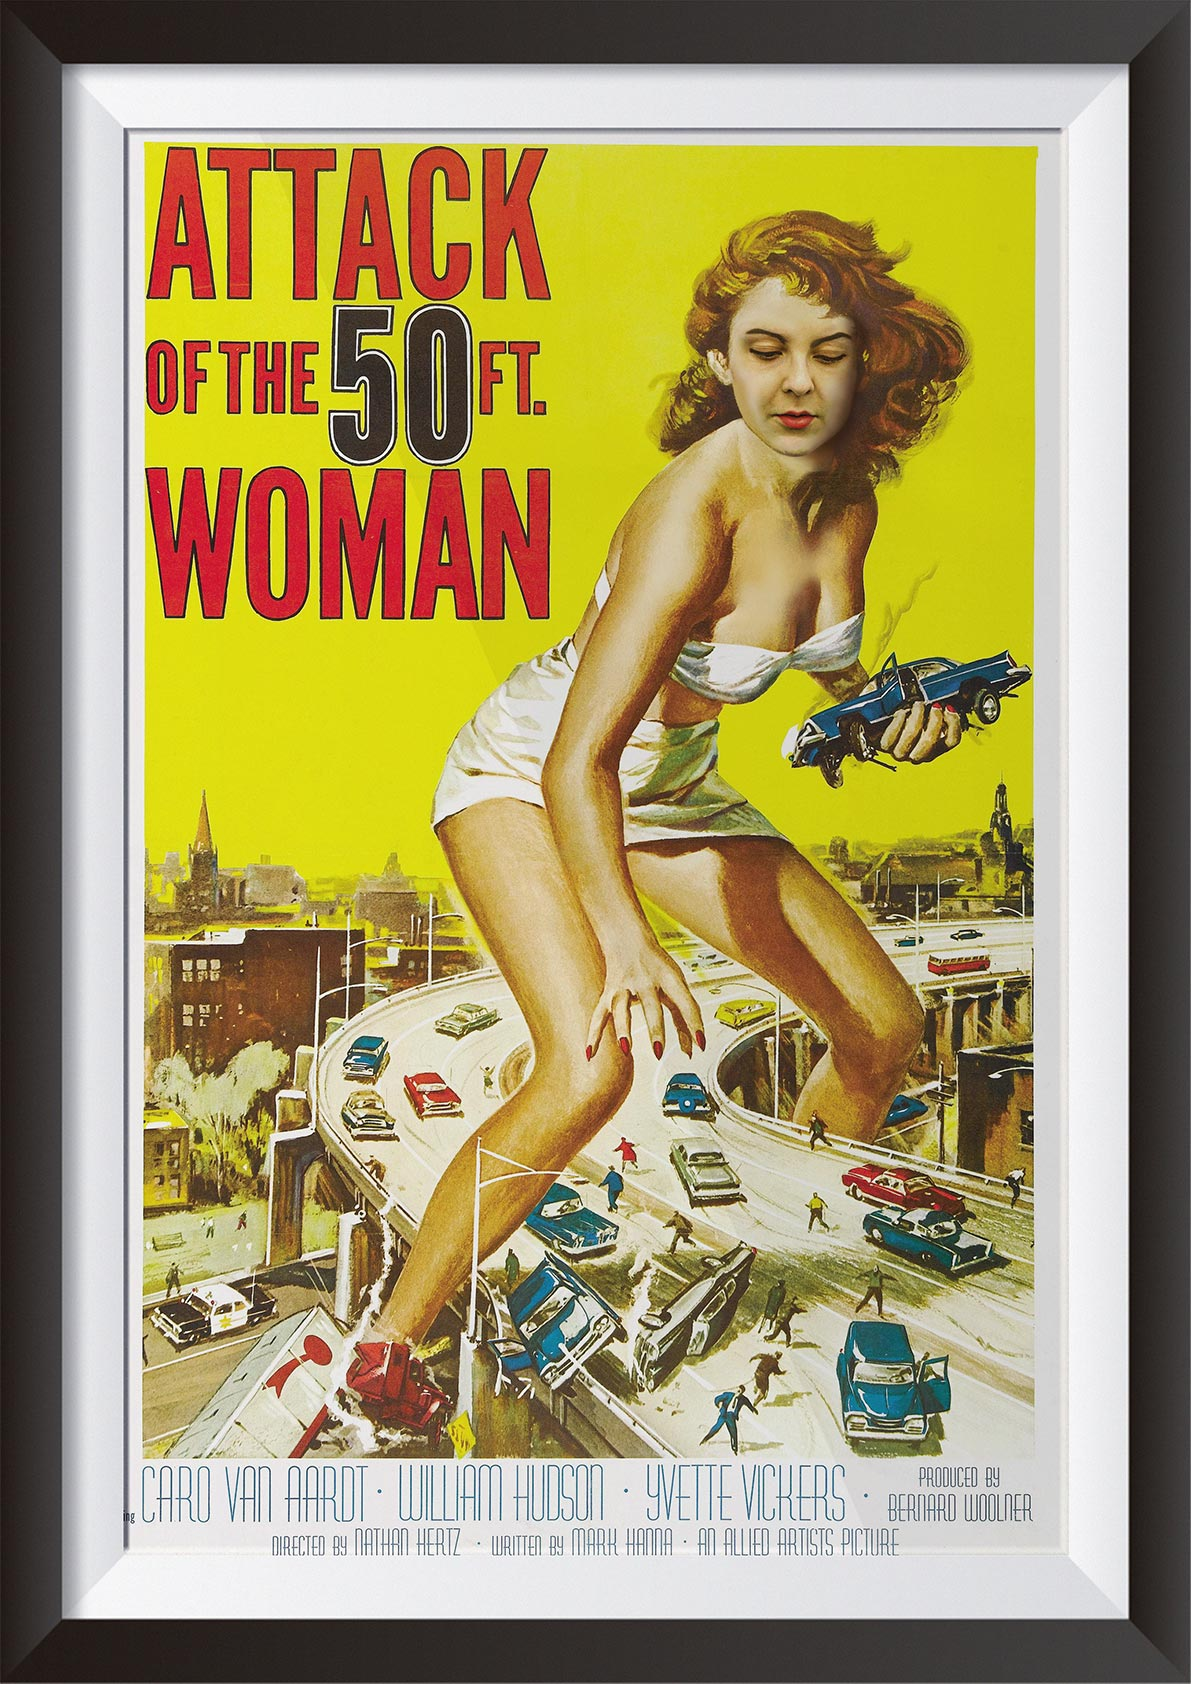 Attack-of-the-50-ft-woman-SM